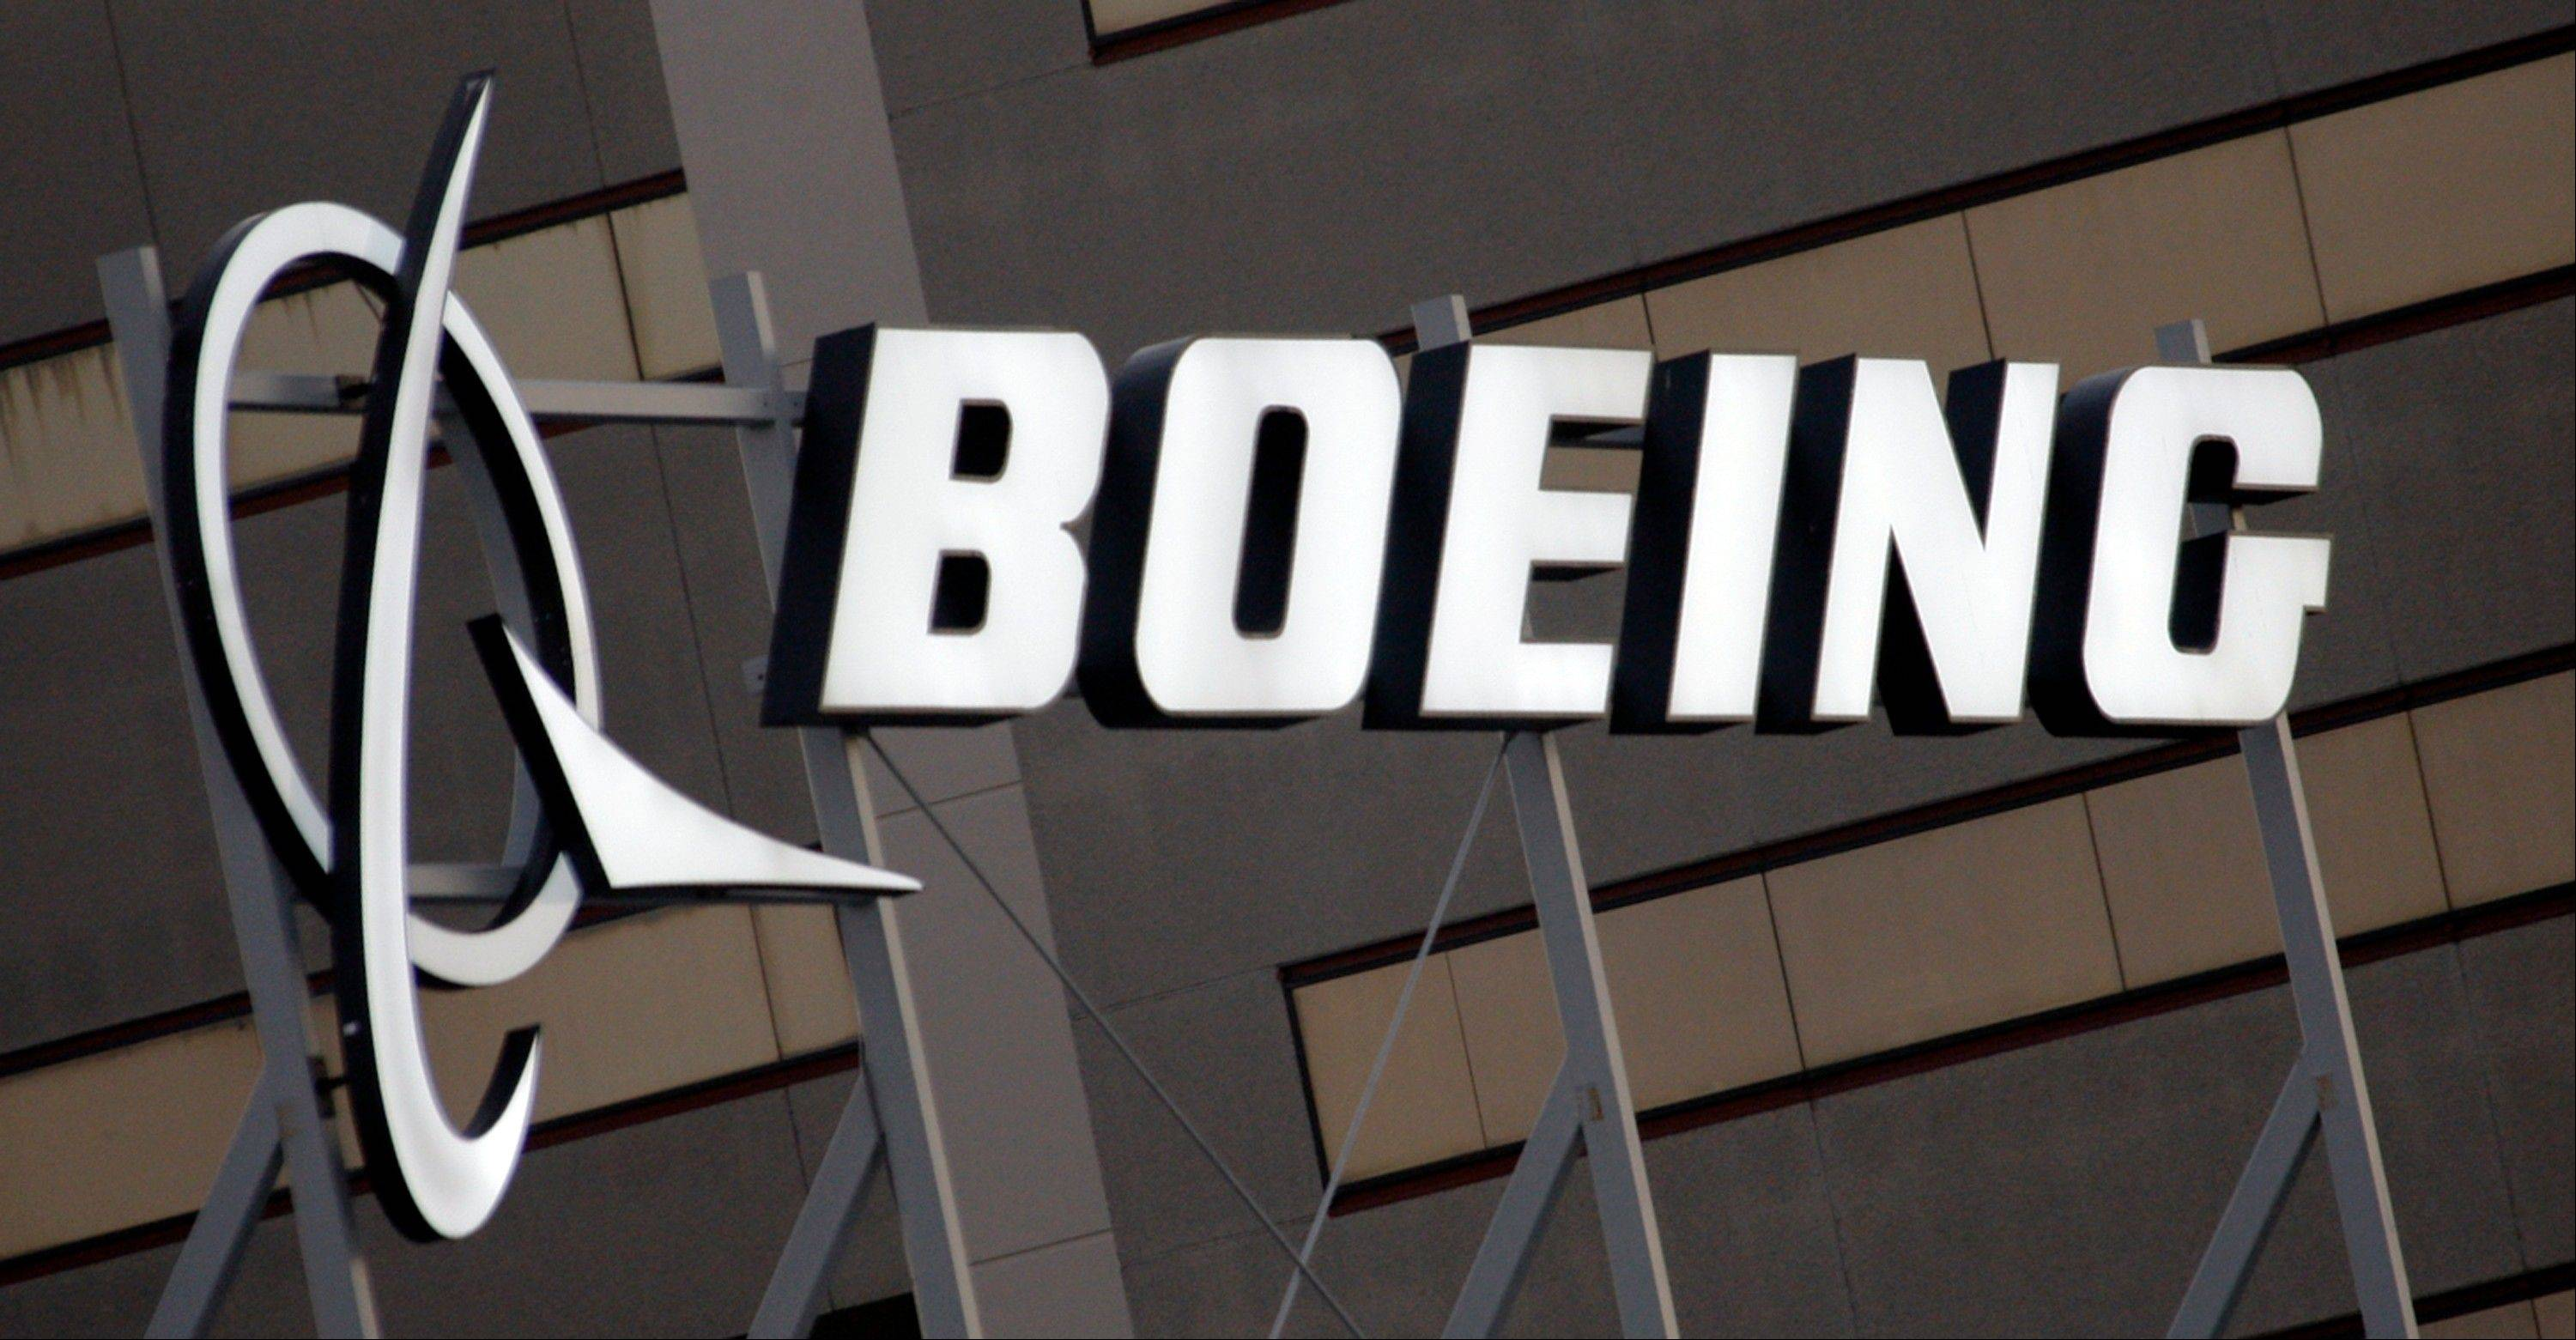 Chicago-based Boeing said Thursday it will establish technology research centers in Alabama, California, Missouri, South Carolina and Washington.